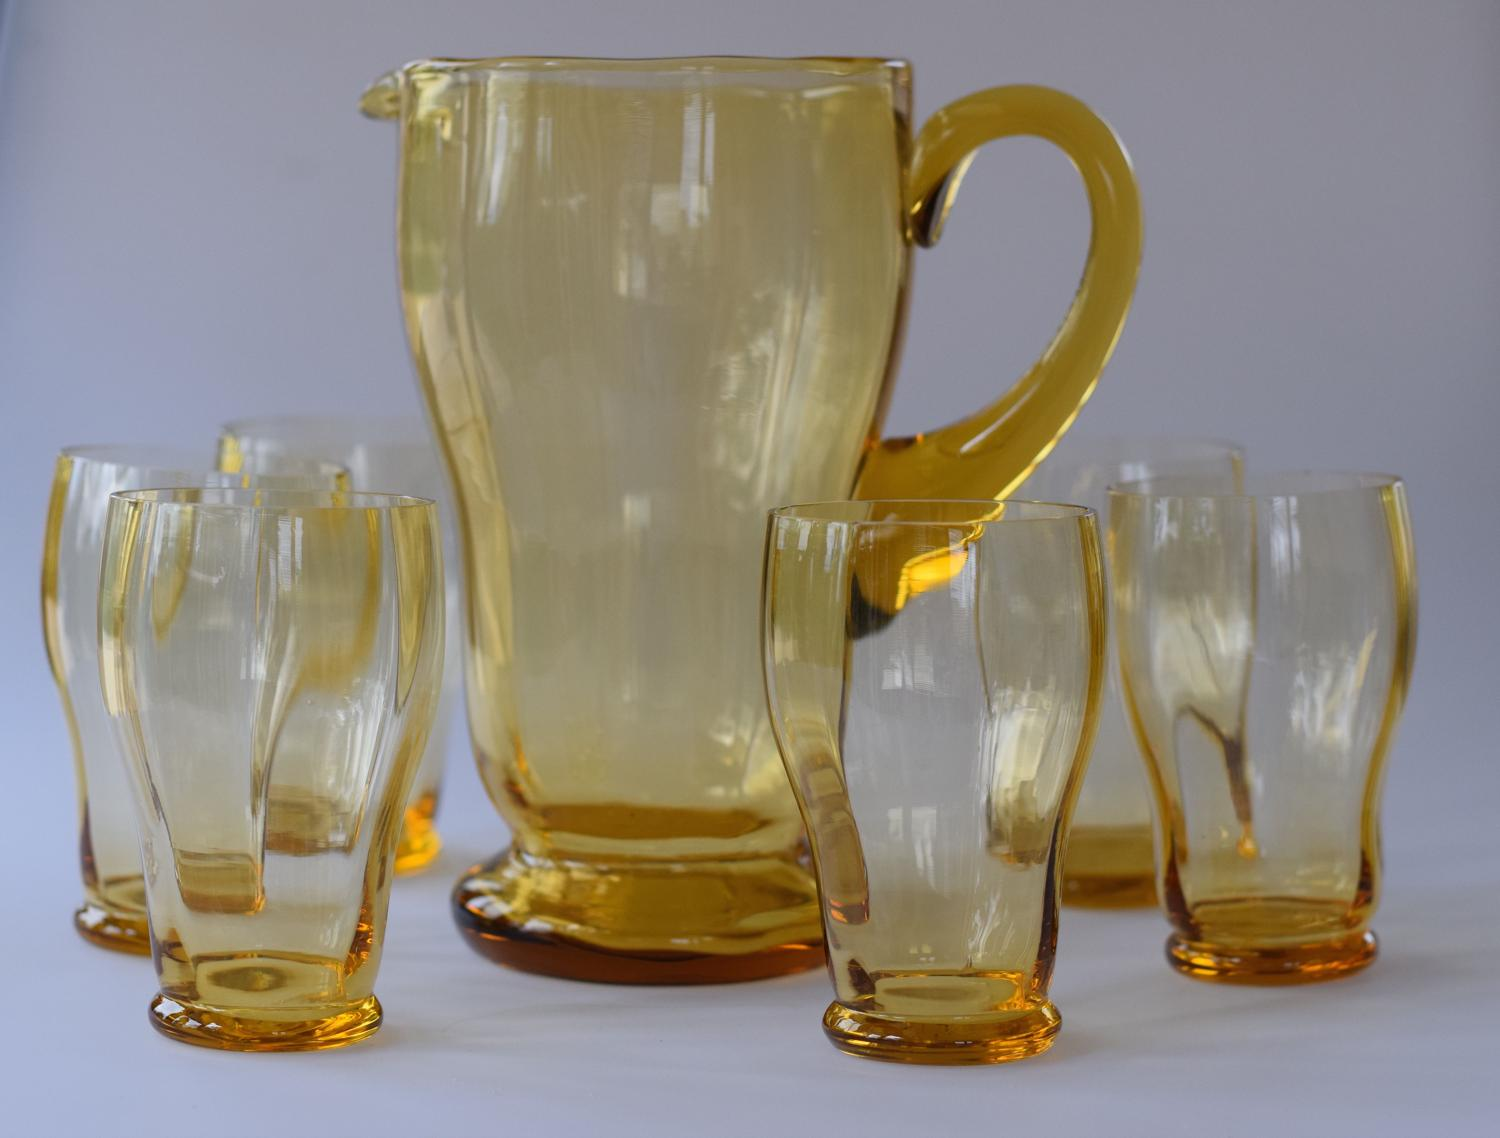 Amber jug and 6 glasses set.